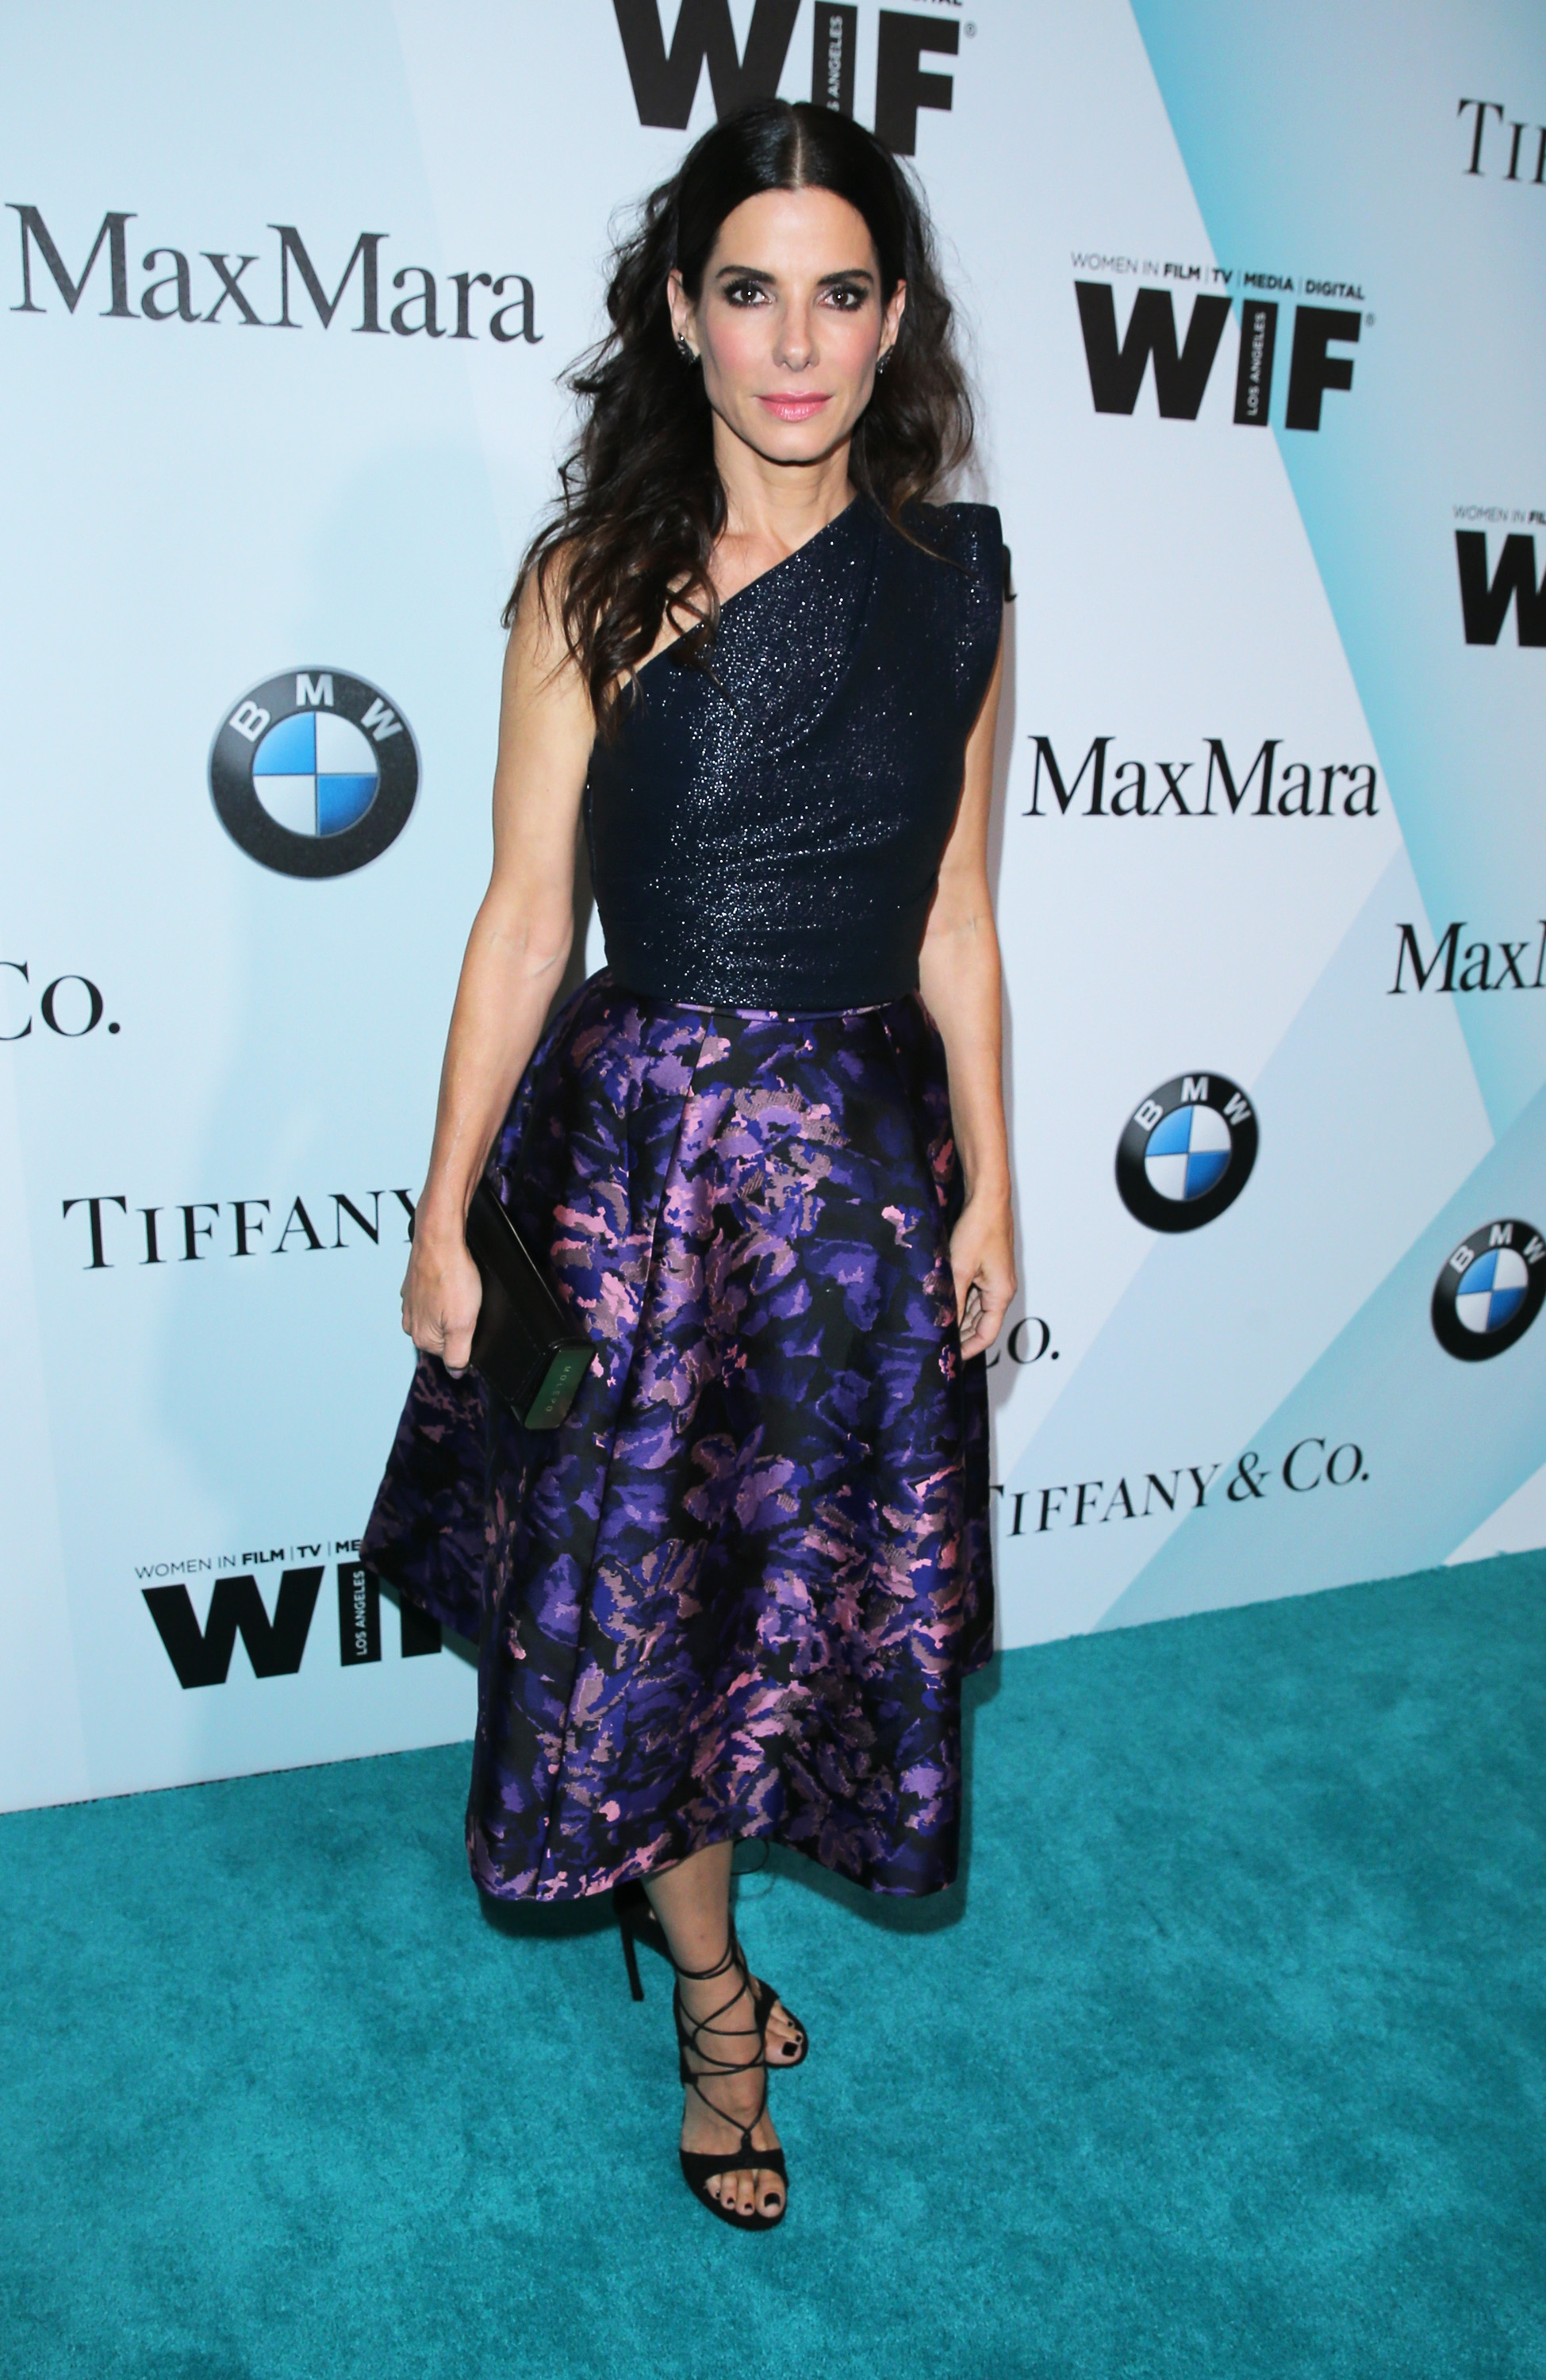 CENTURY CITY, CA - JUNE 16:  Actress Sandra Bullock attends the Women In Film 2015 Crystal + Lucy Awards Presented by Max Mara, BMW of North America, and Tiffany & Co. at the Hyatt Regency Century Plaza on June 16, 2015 in Century City, California.  (Photo by Mark Davis/Getty Images for Women in Film)